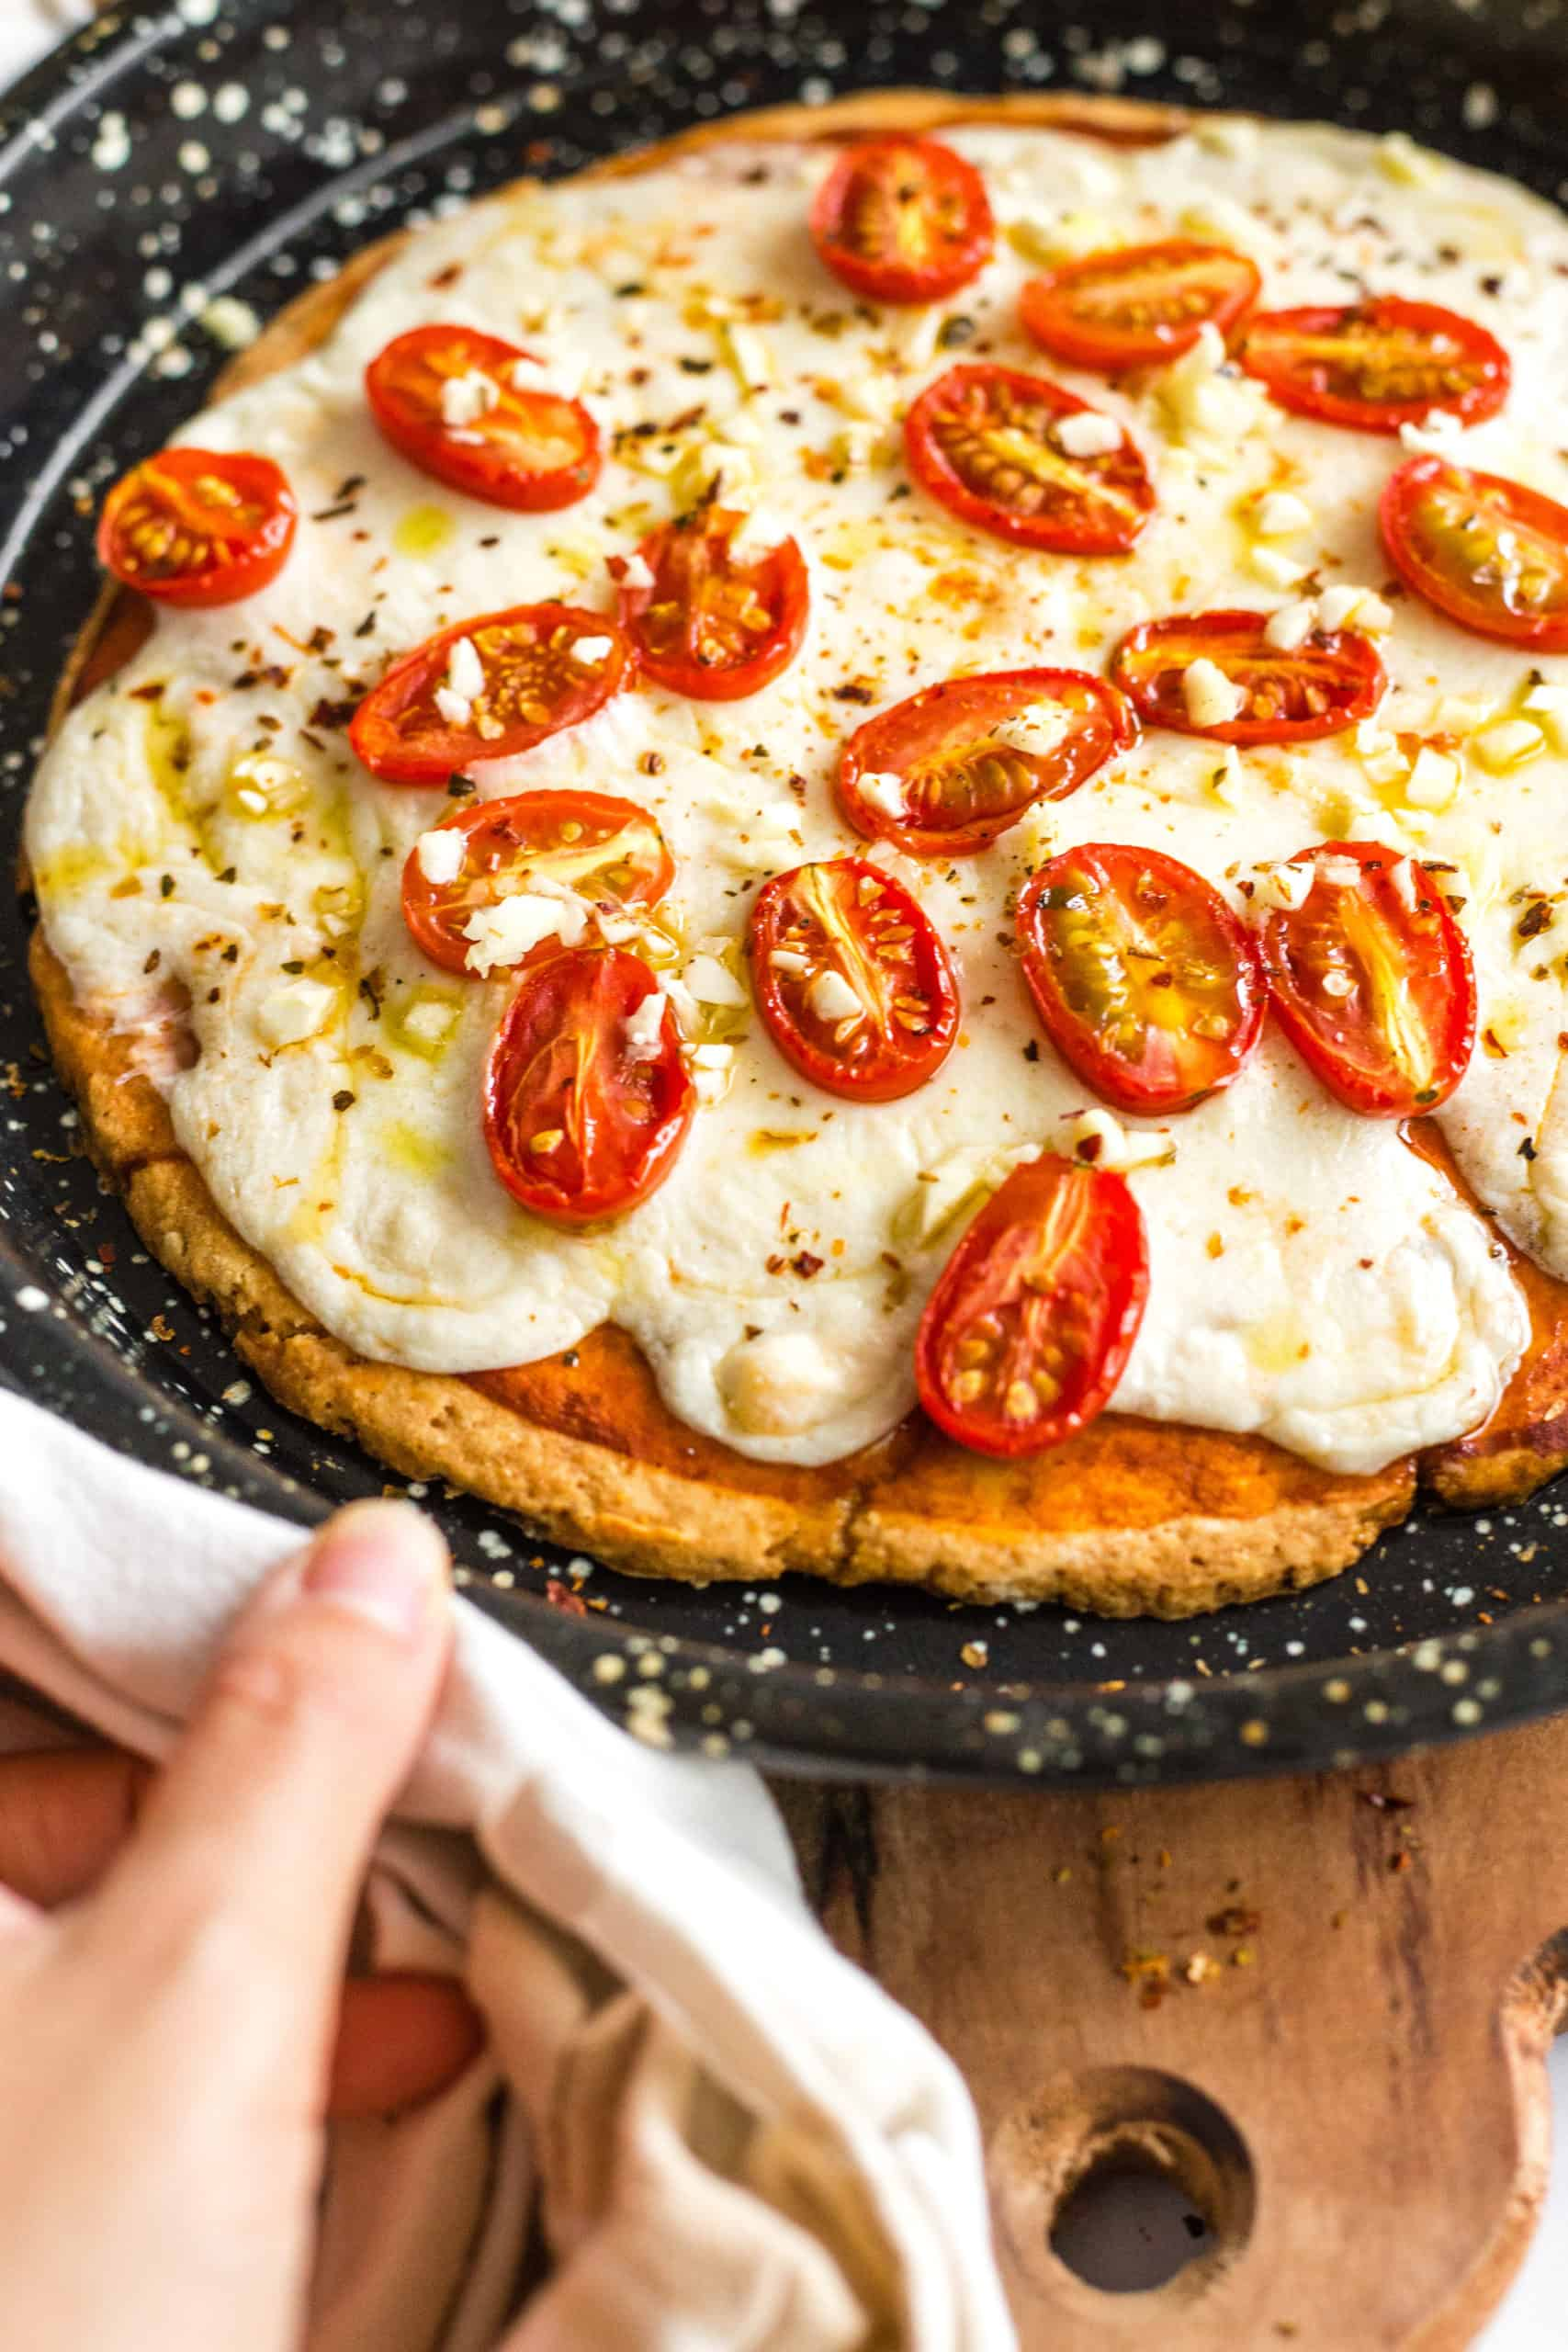 Gluten-free pizza in a pizza pan